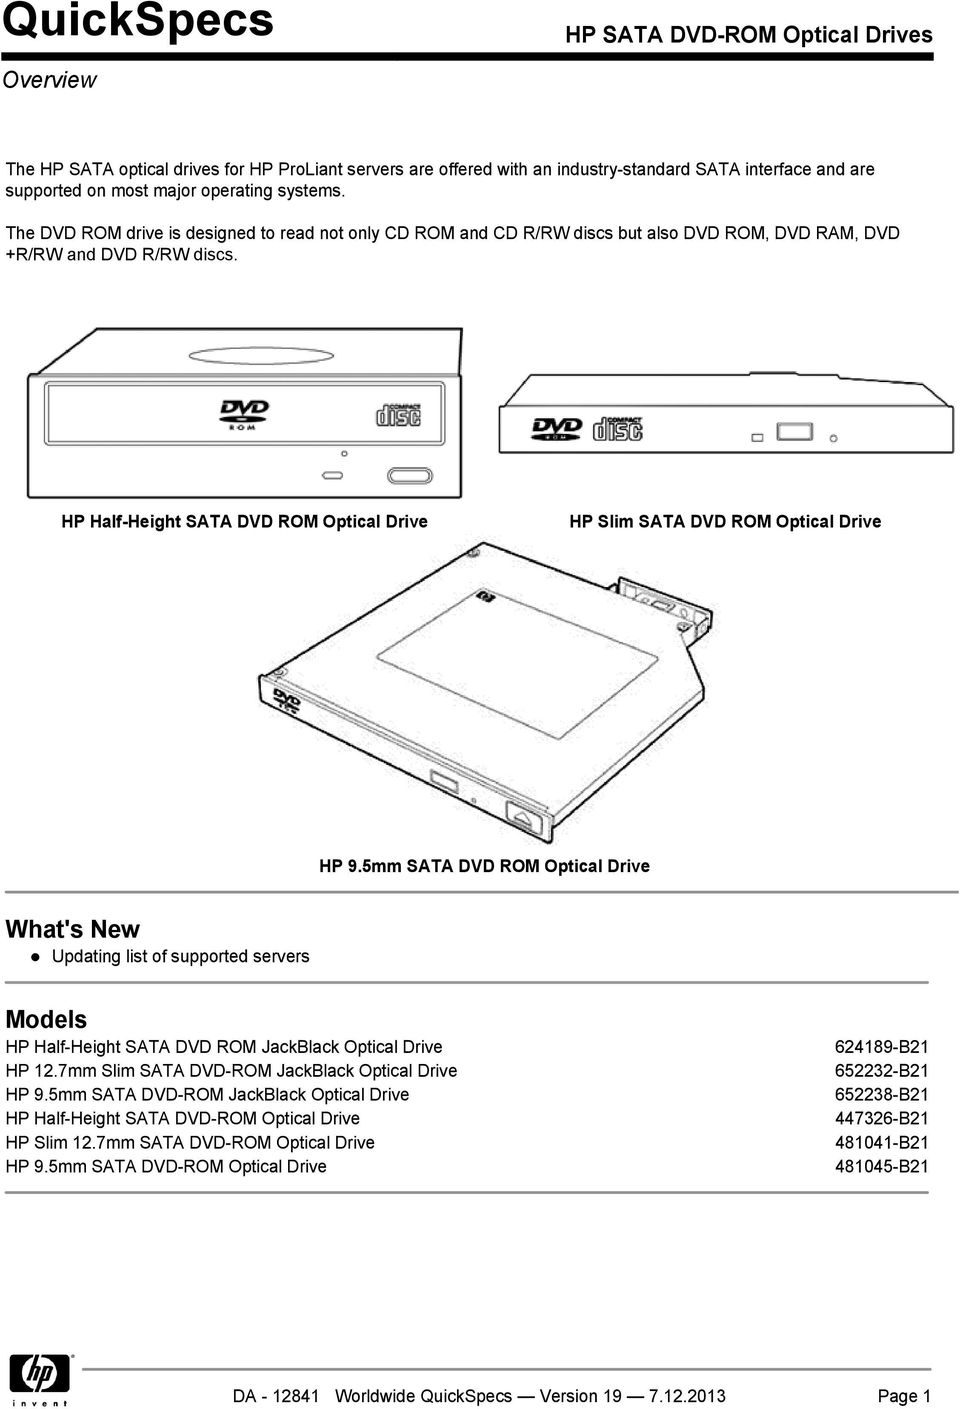 HP Half-Height SATA DVD ROM Optical Drive HP Slim SATA DVD ROM Optical Drive HP 9.